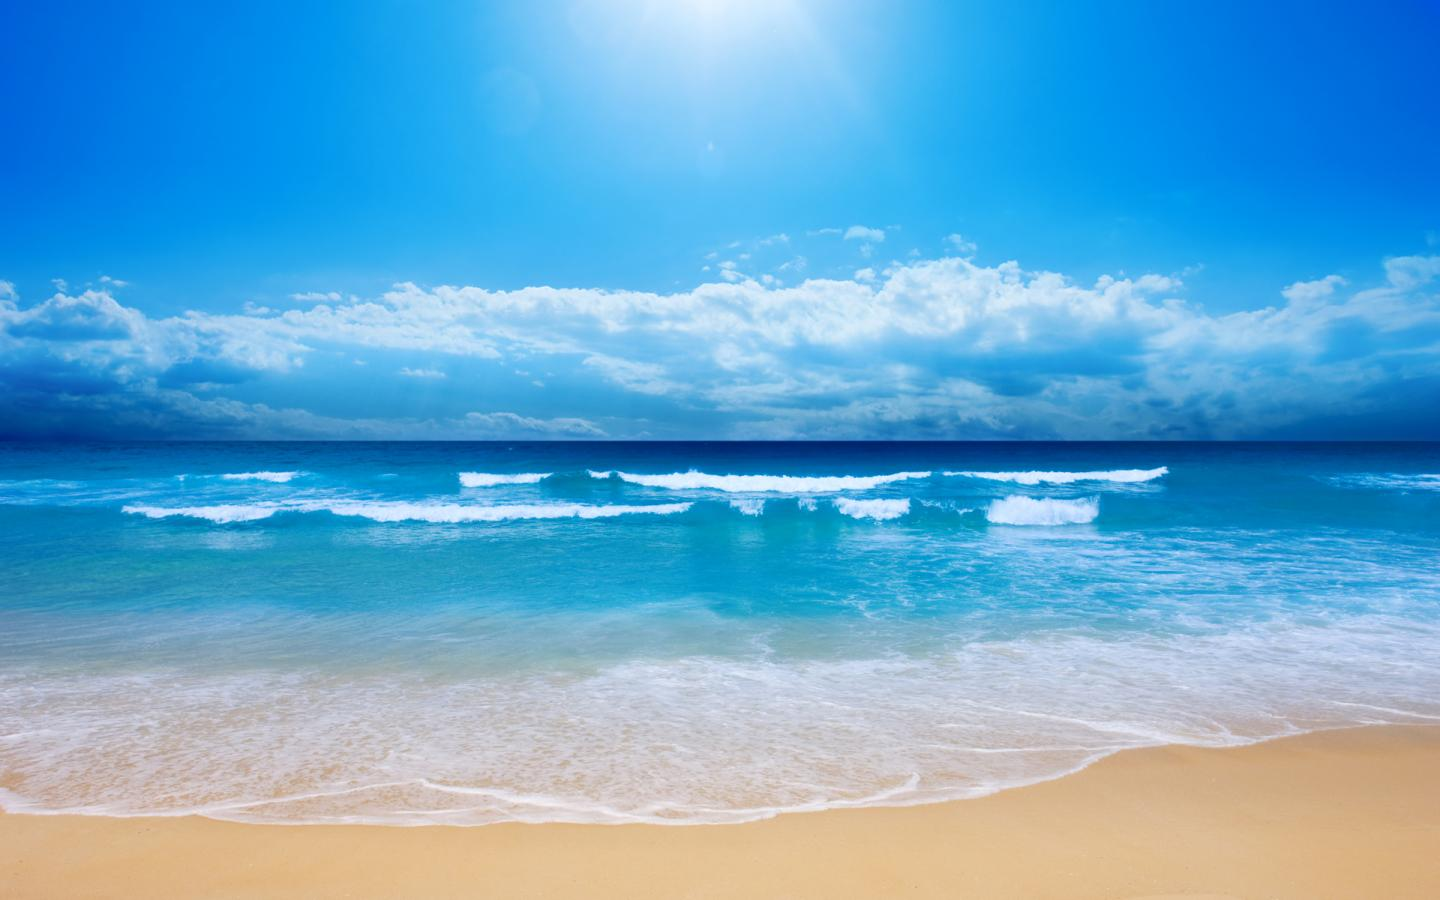 beautiful ocean   Beautiful Pictures Photo 27115524 1440x900